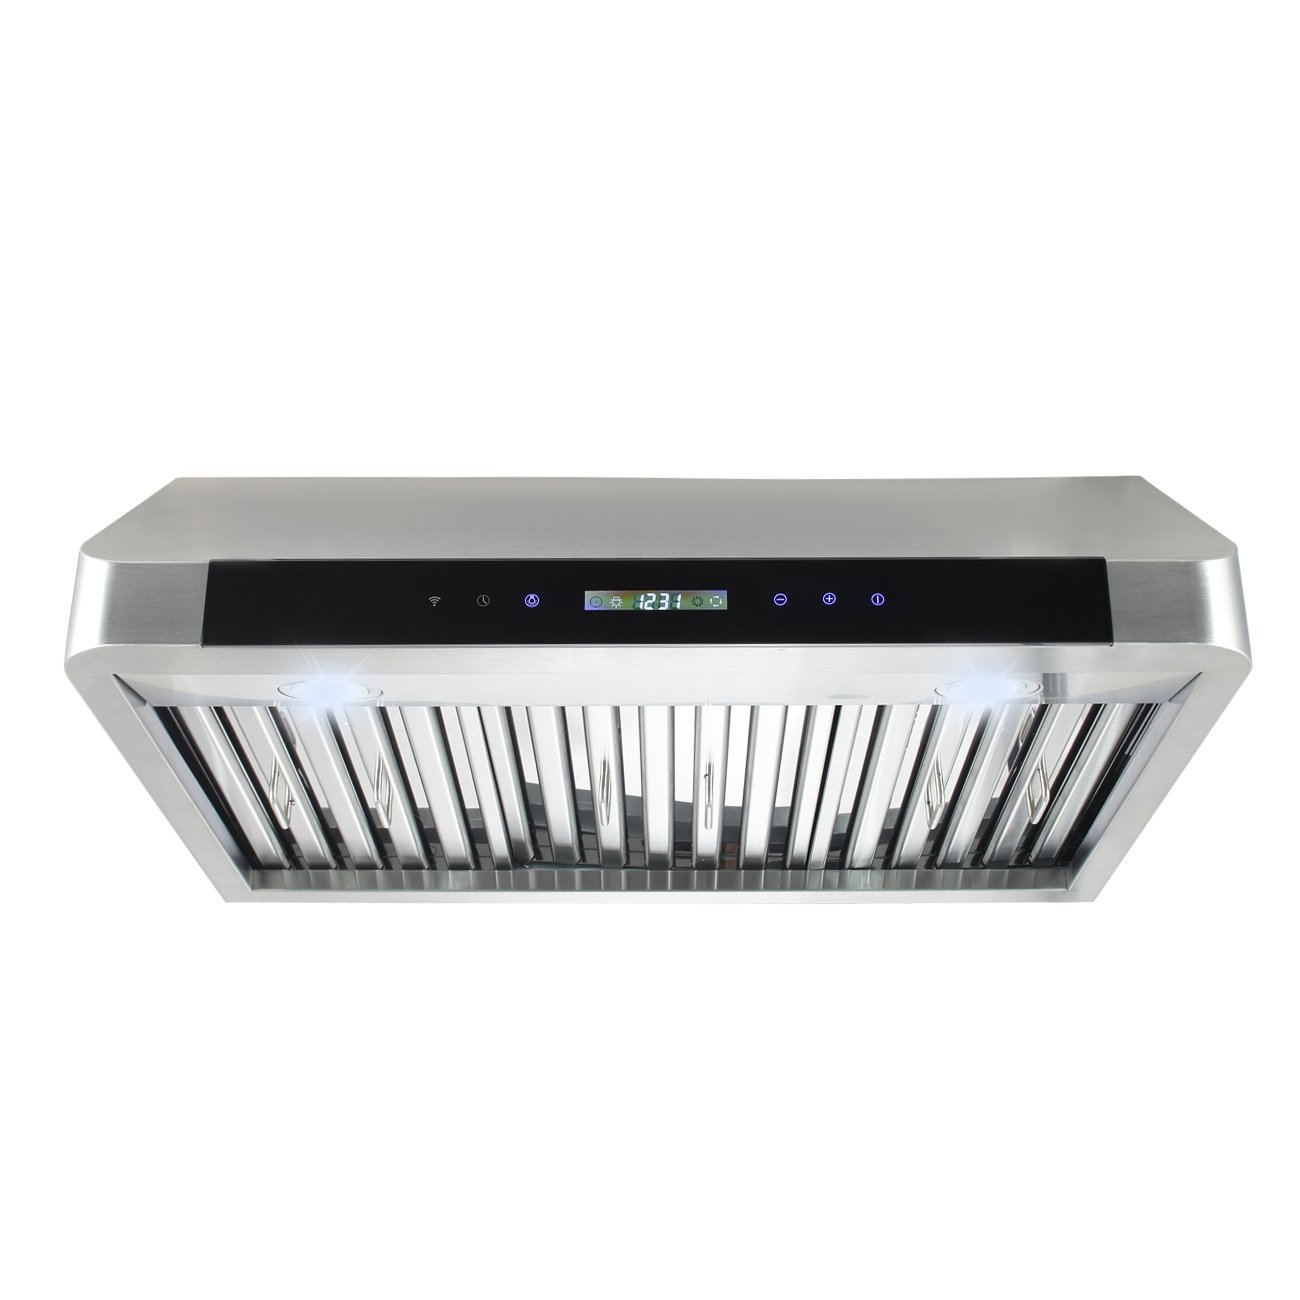 DELLA 30 Under Cabinet Stainless Steel 3 Speeds Touch Control Panel Range Hood Home Kitchen Vent LED Screen Stove